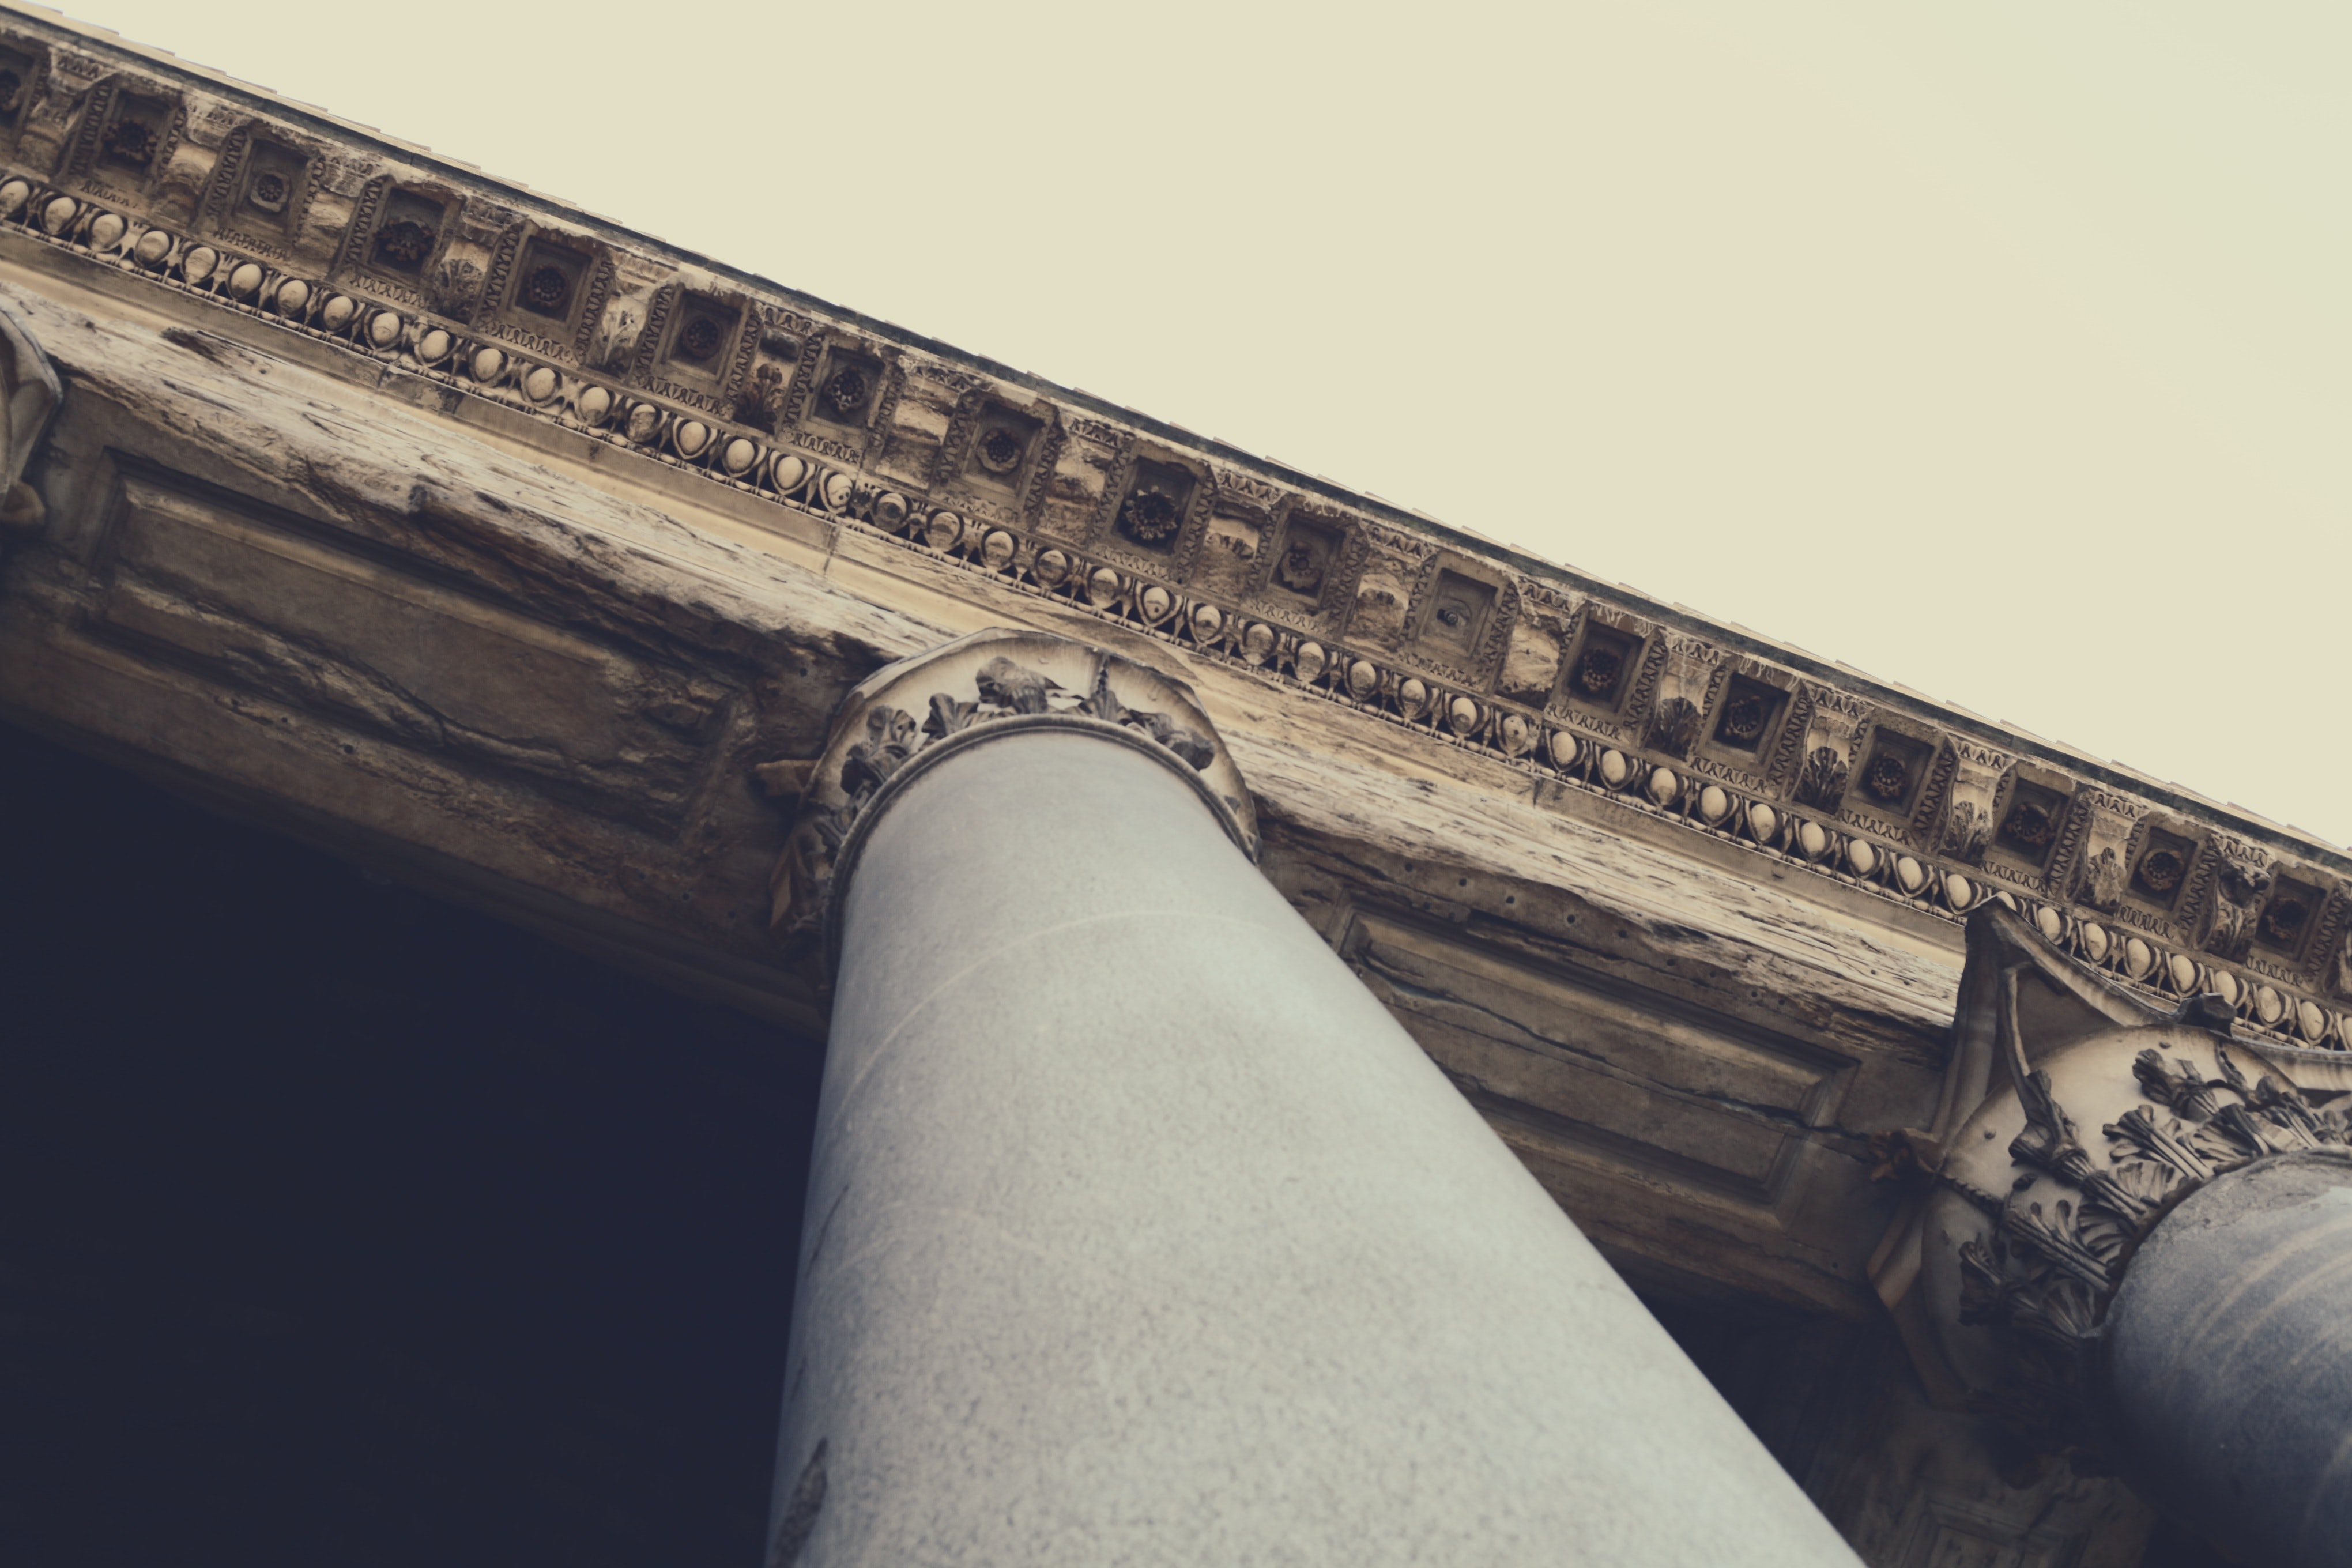 A shot looking up at a pillar with greek architectural features